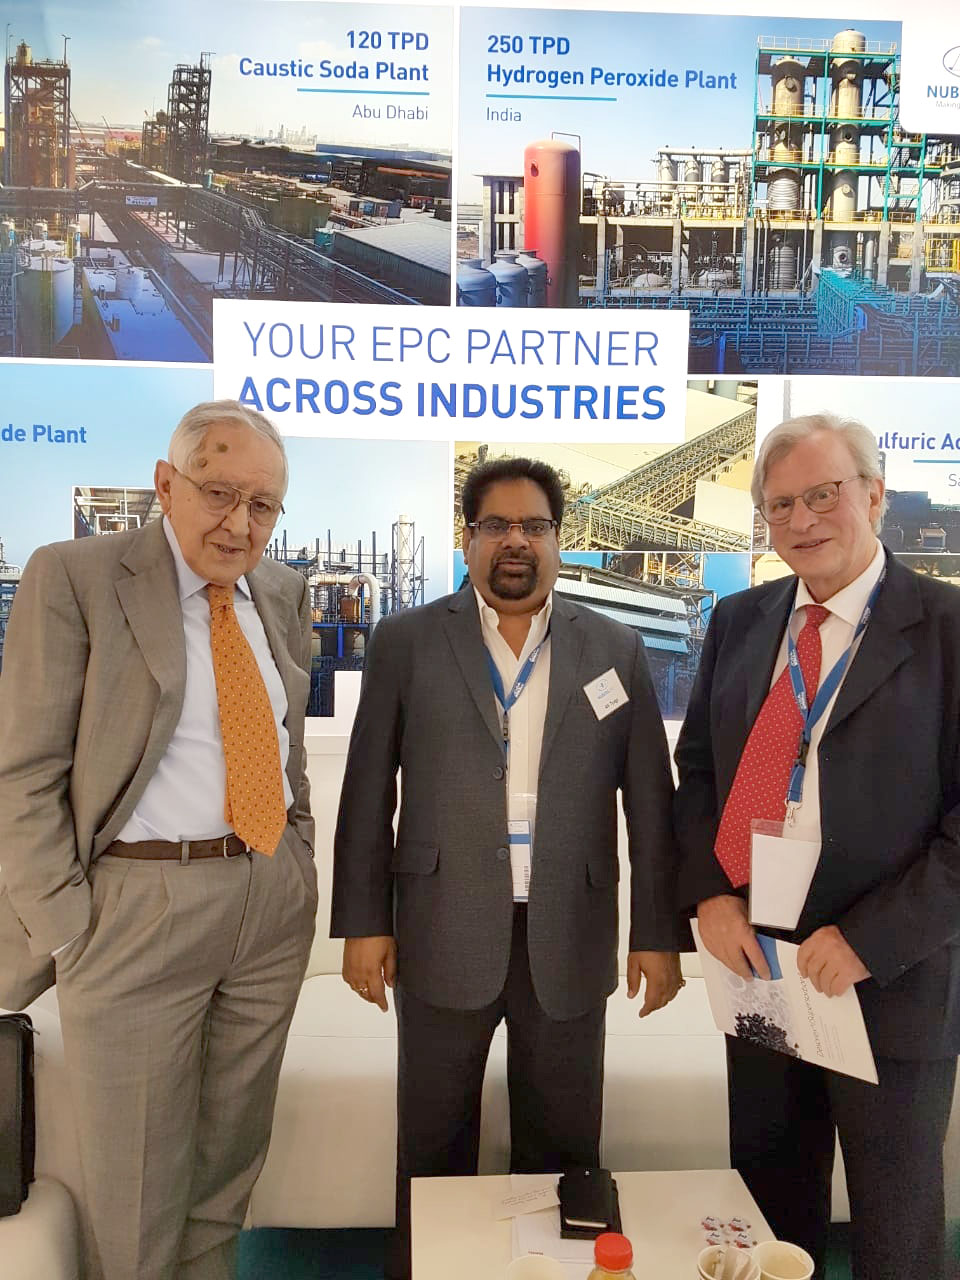 AK Tyagi, Nuberg Mananging Director with guests at ACHEMA 2018